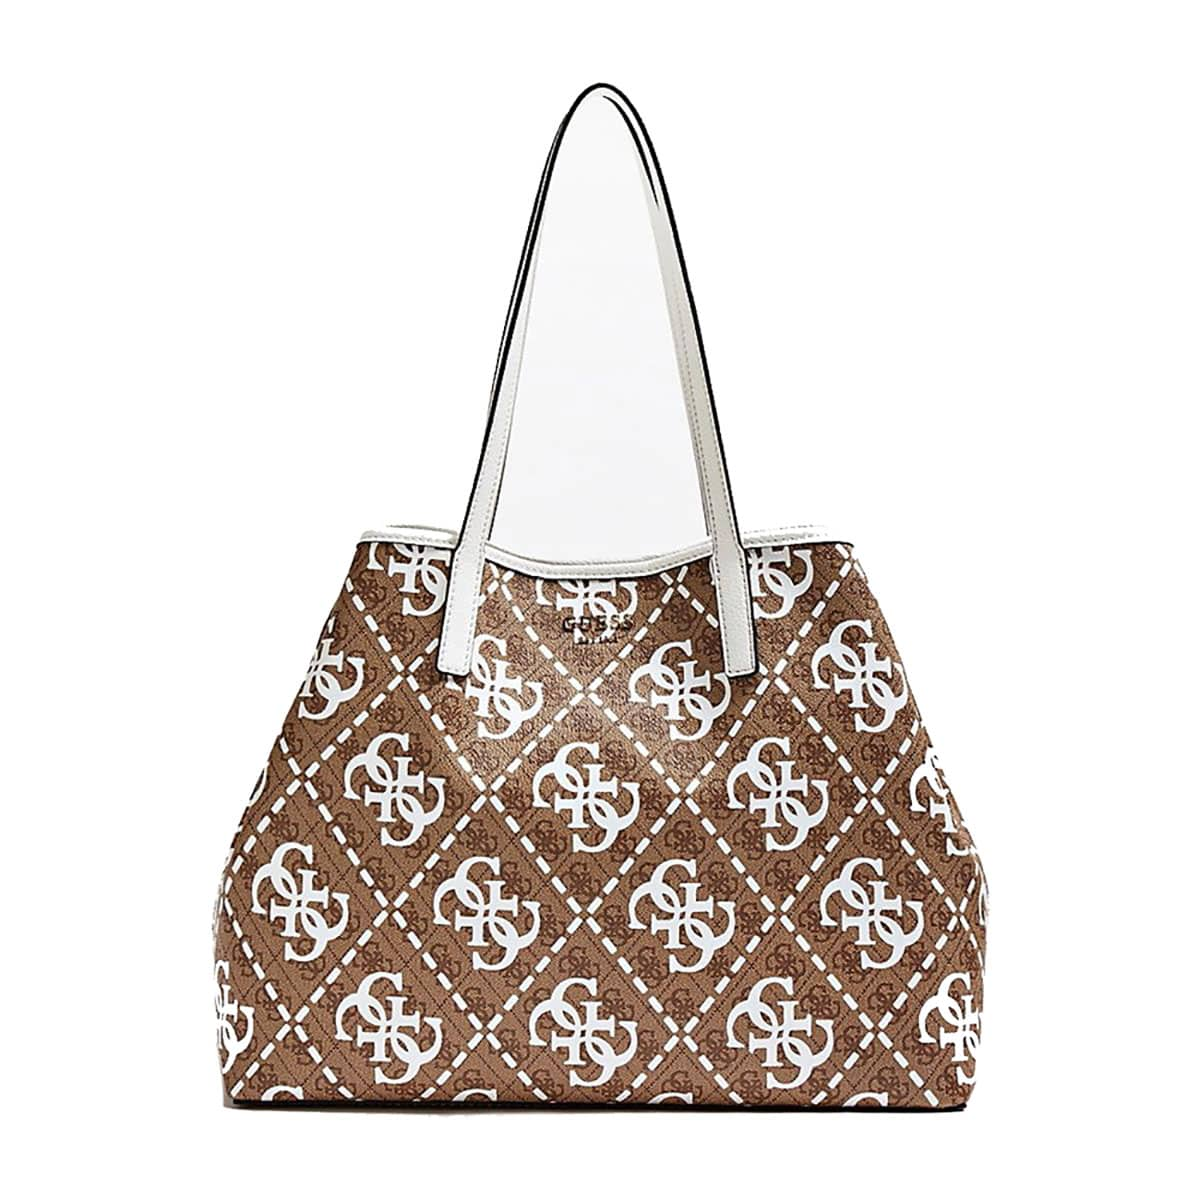 676b8573b5 GUESS HWSW69 95240 WML VIKKY LARGE TOTE